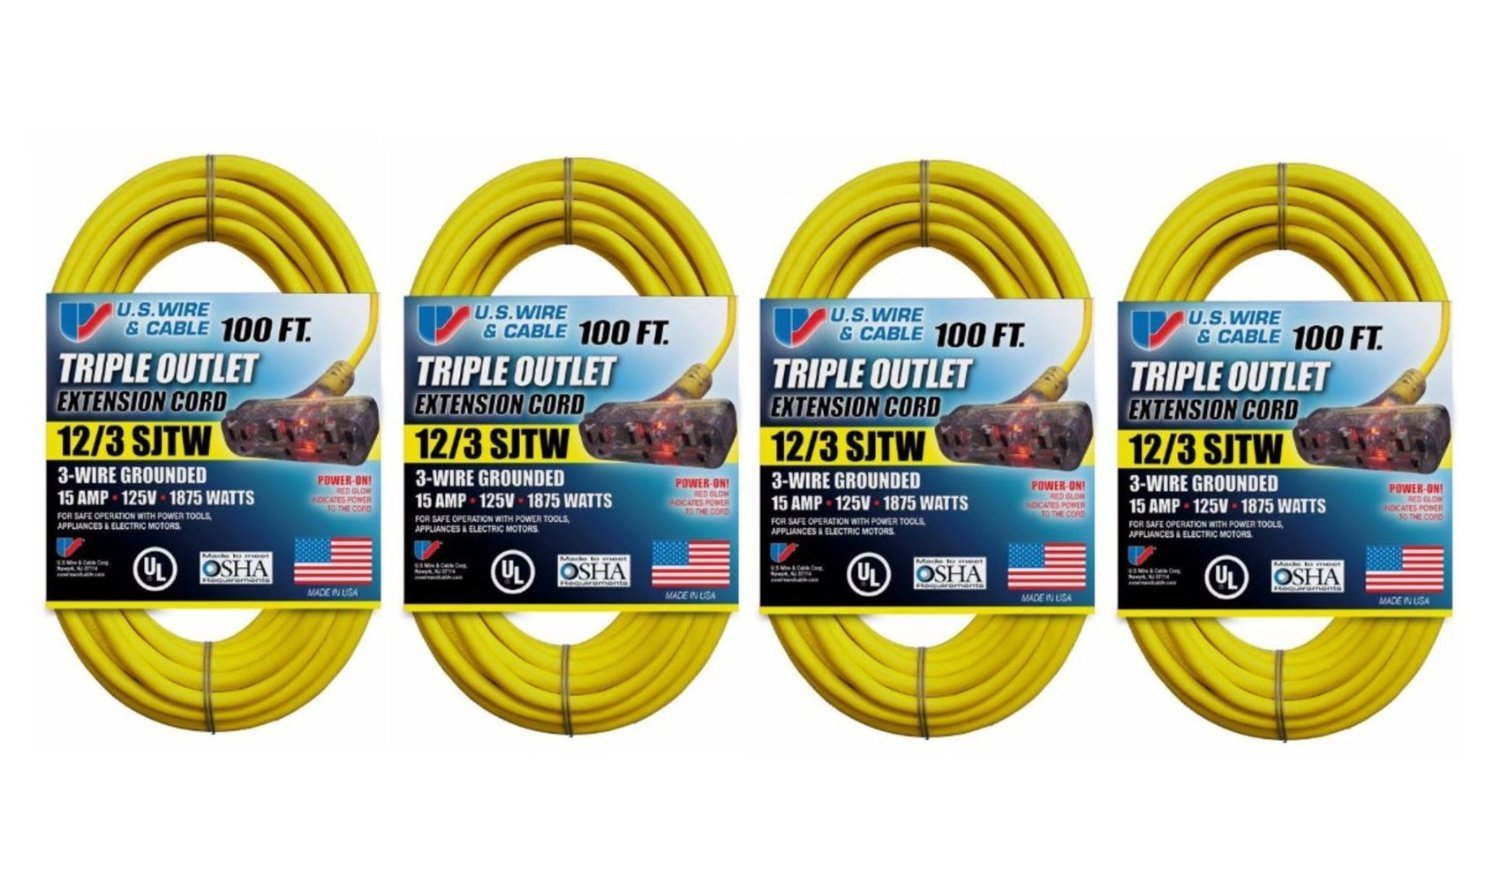 Us Wire 100 Foot Yellow Extension Cord With Lighted Pow R Block 4 Wiring Cable Outlet Pack